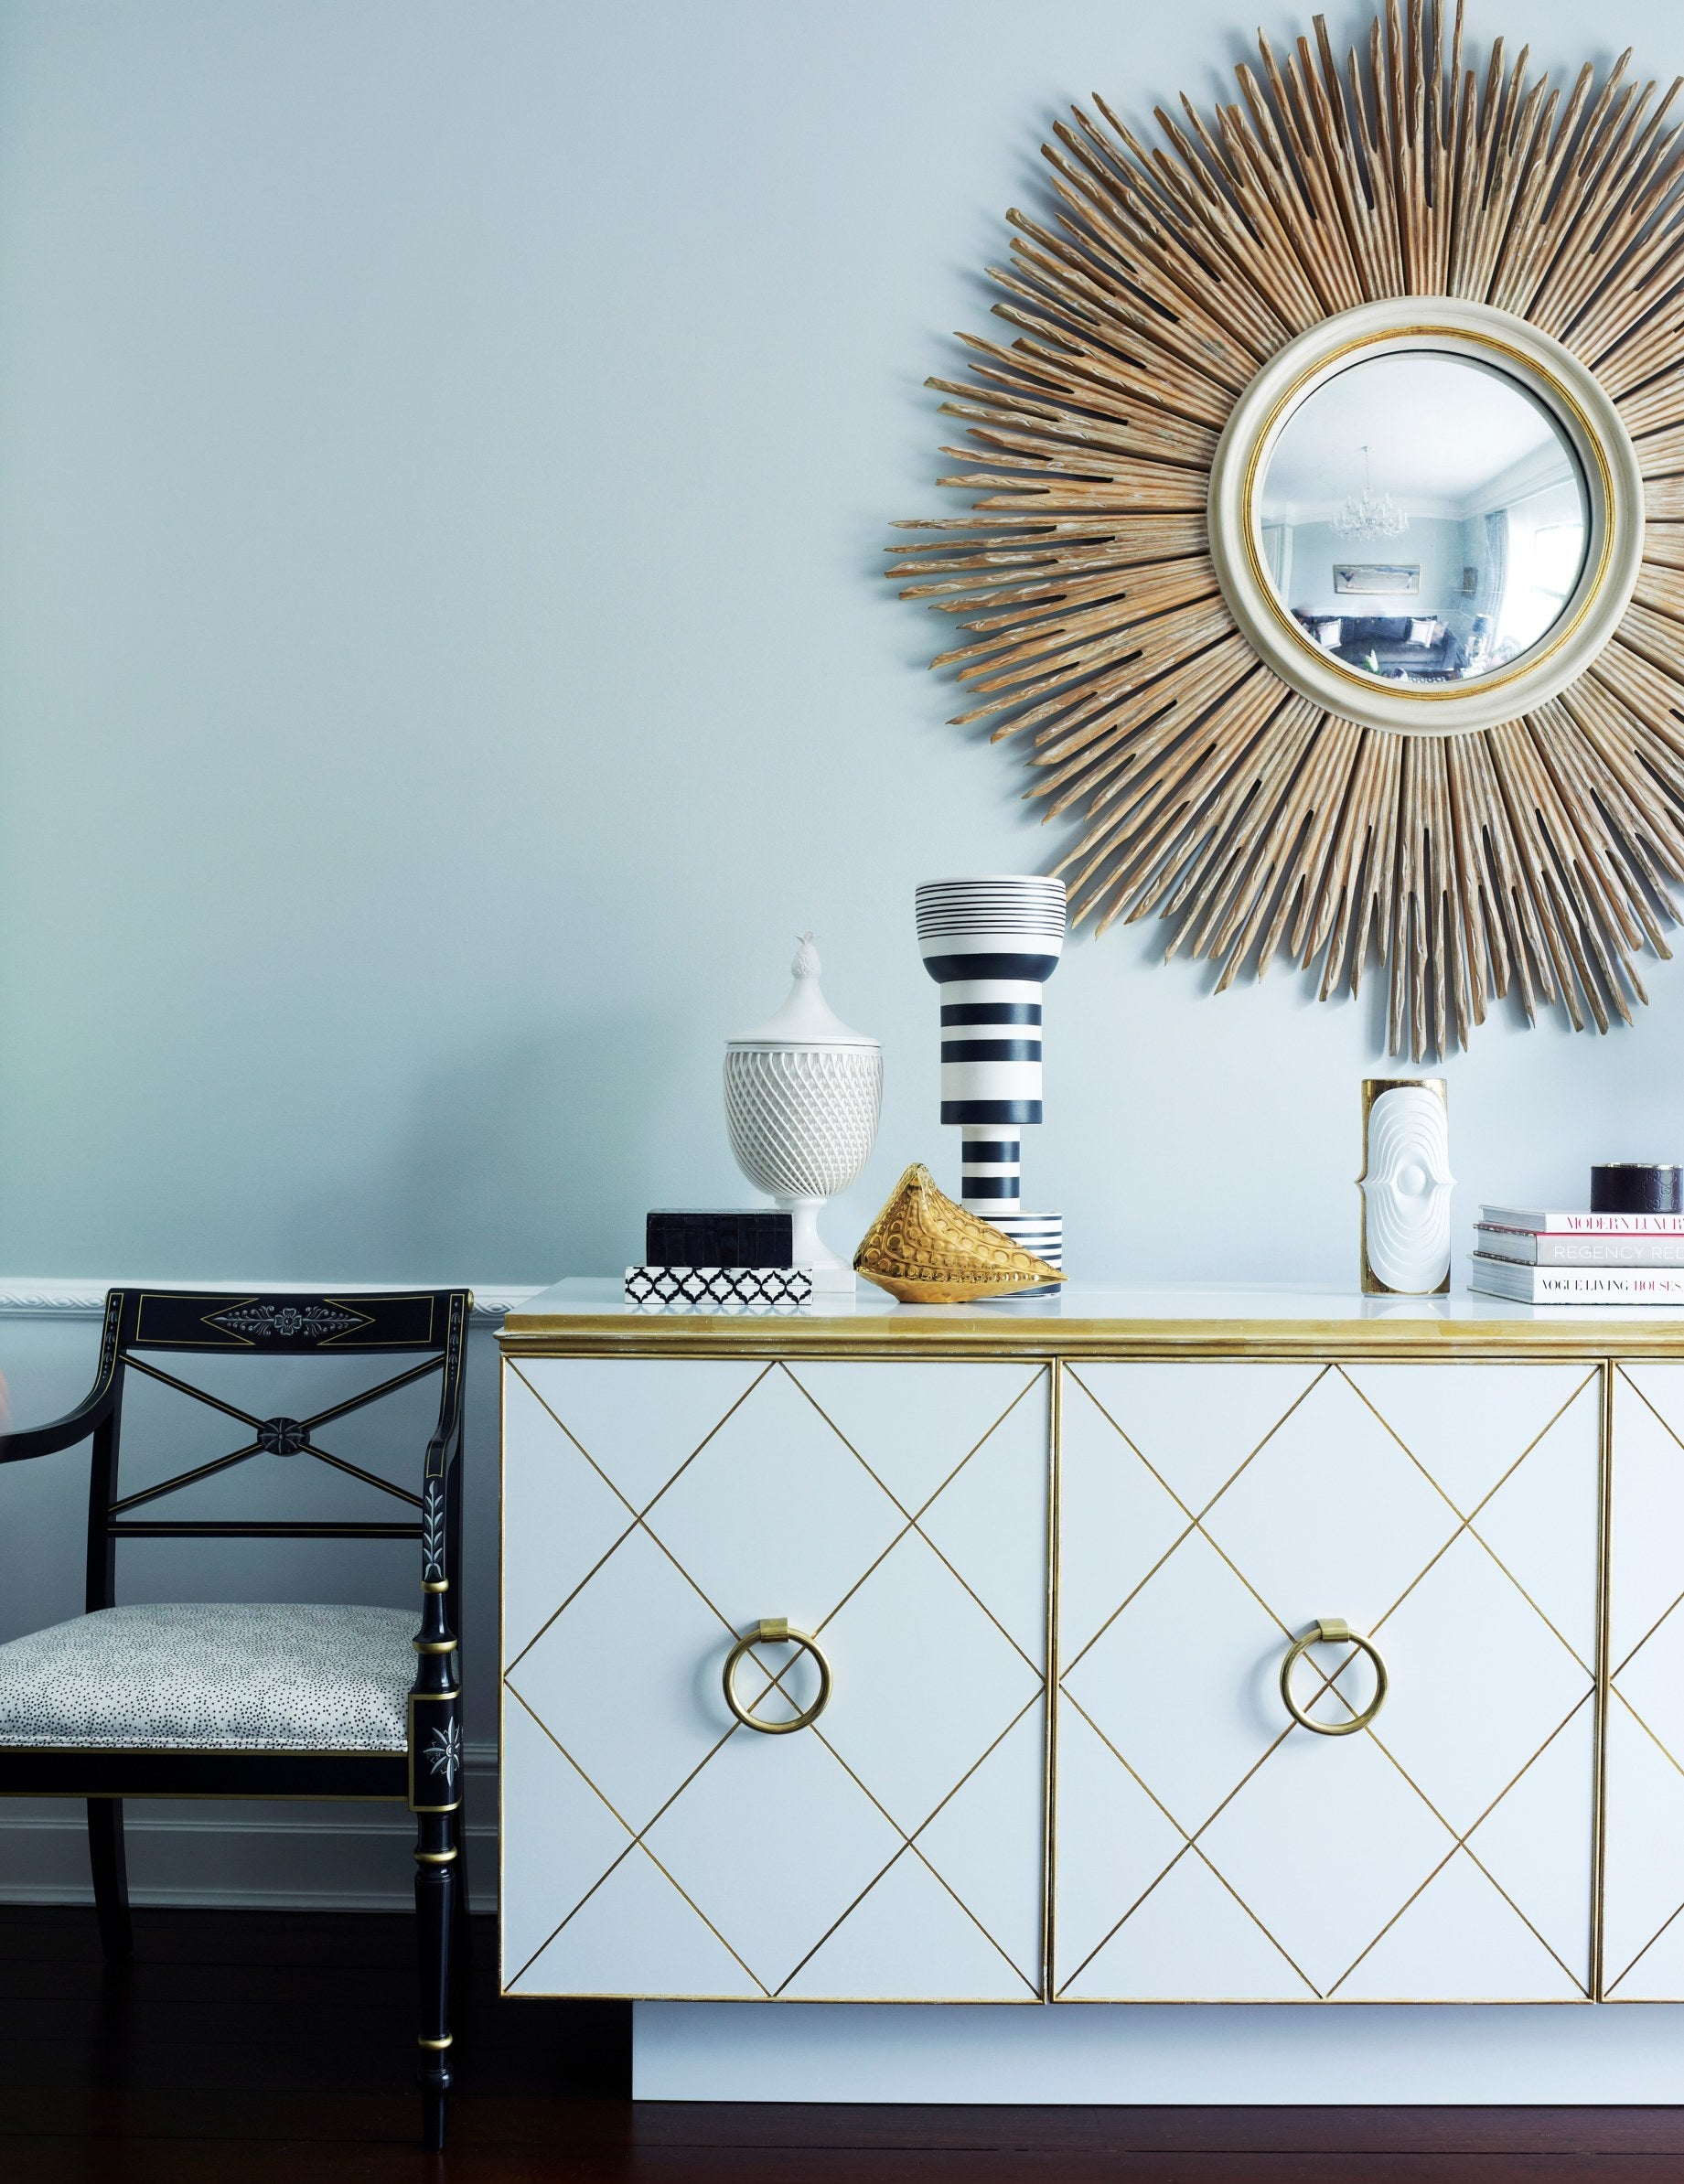 Statement Mirrors - 7 Ways To Make a Statement In Your Living Room - LuxDeco.com